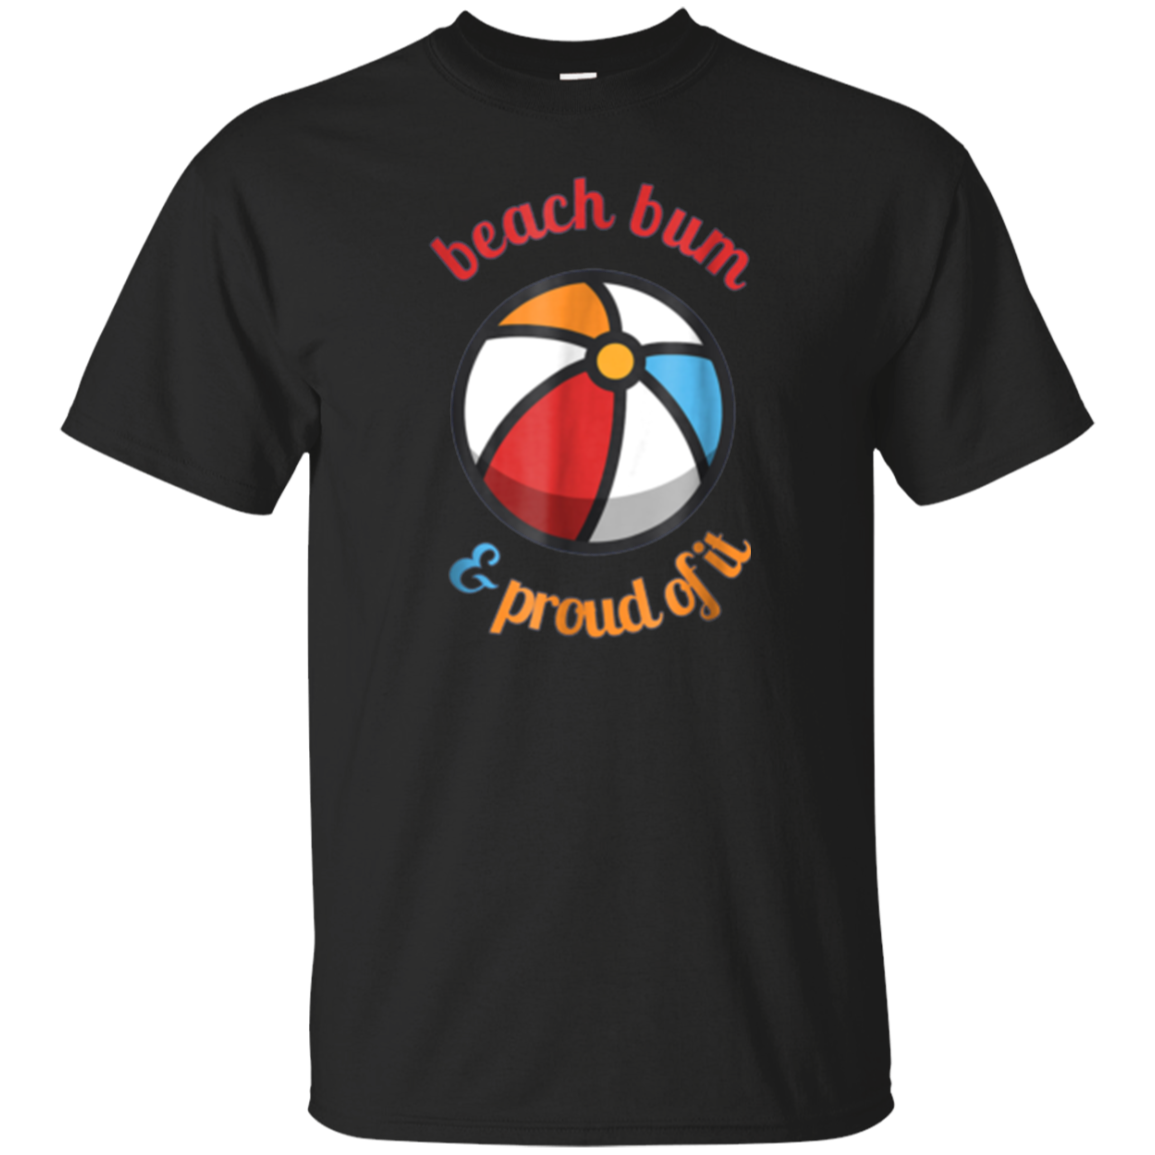 Beach Bum and Proud Of It funny surfer, surfing summer shirt